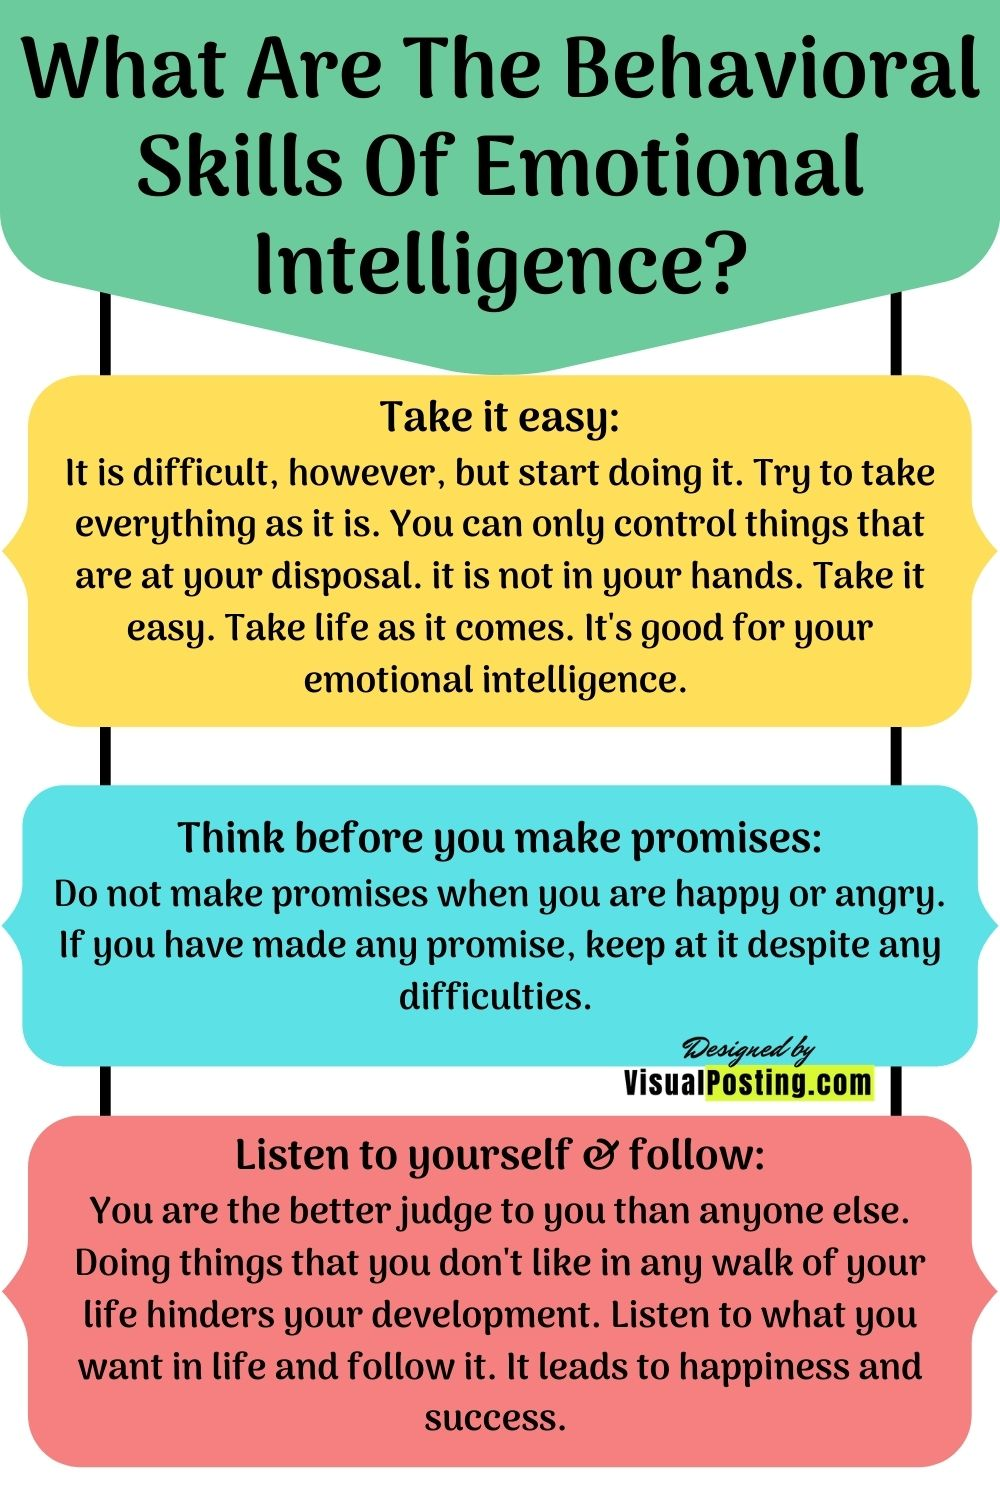 What Are The Behavioral Skills Of Emotional Intelligence?.jpg